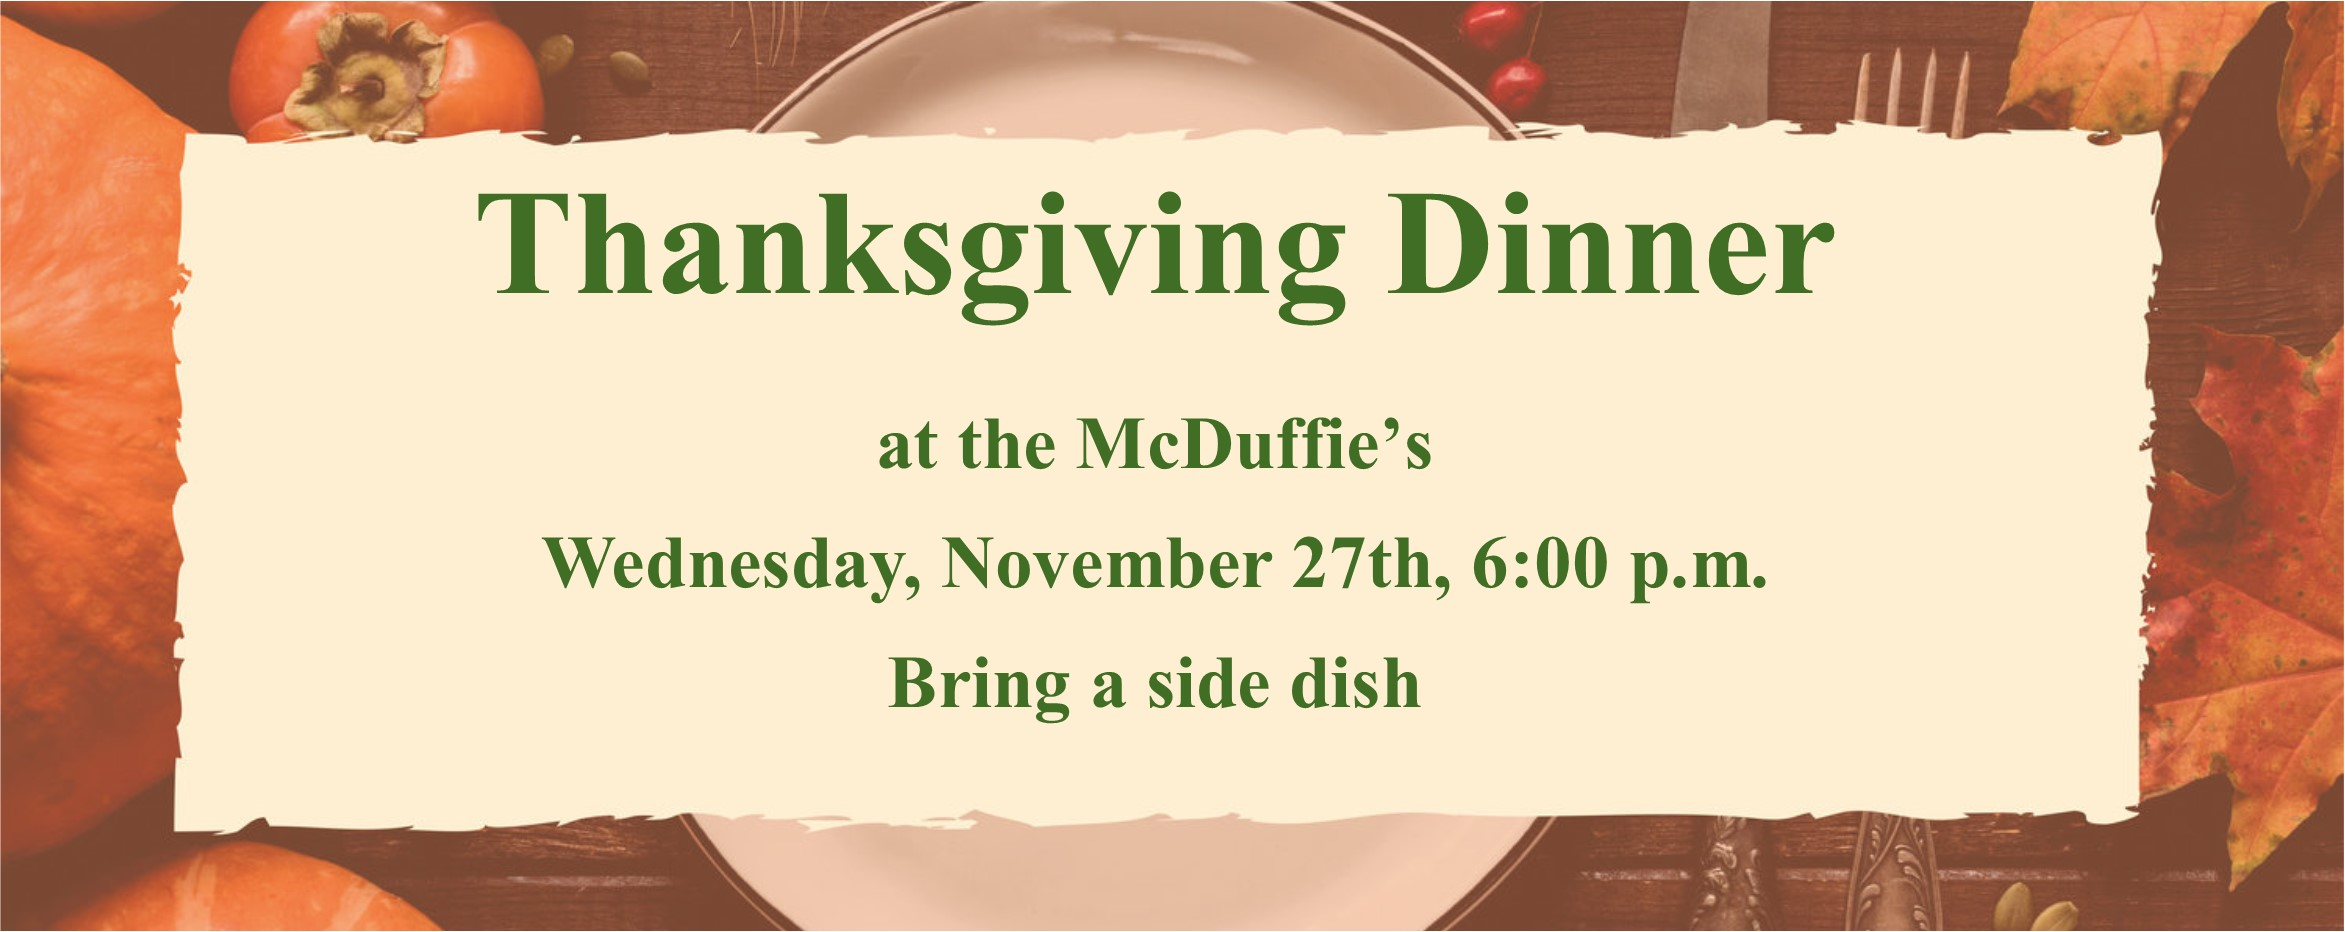 Thanksgiving Dinner at the McDuffie's